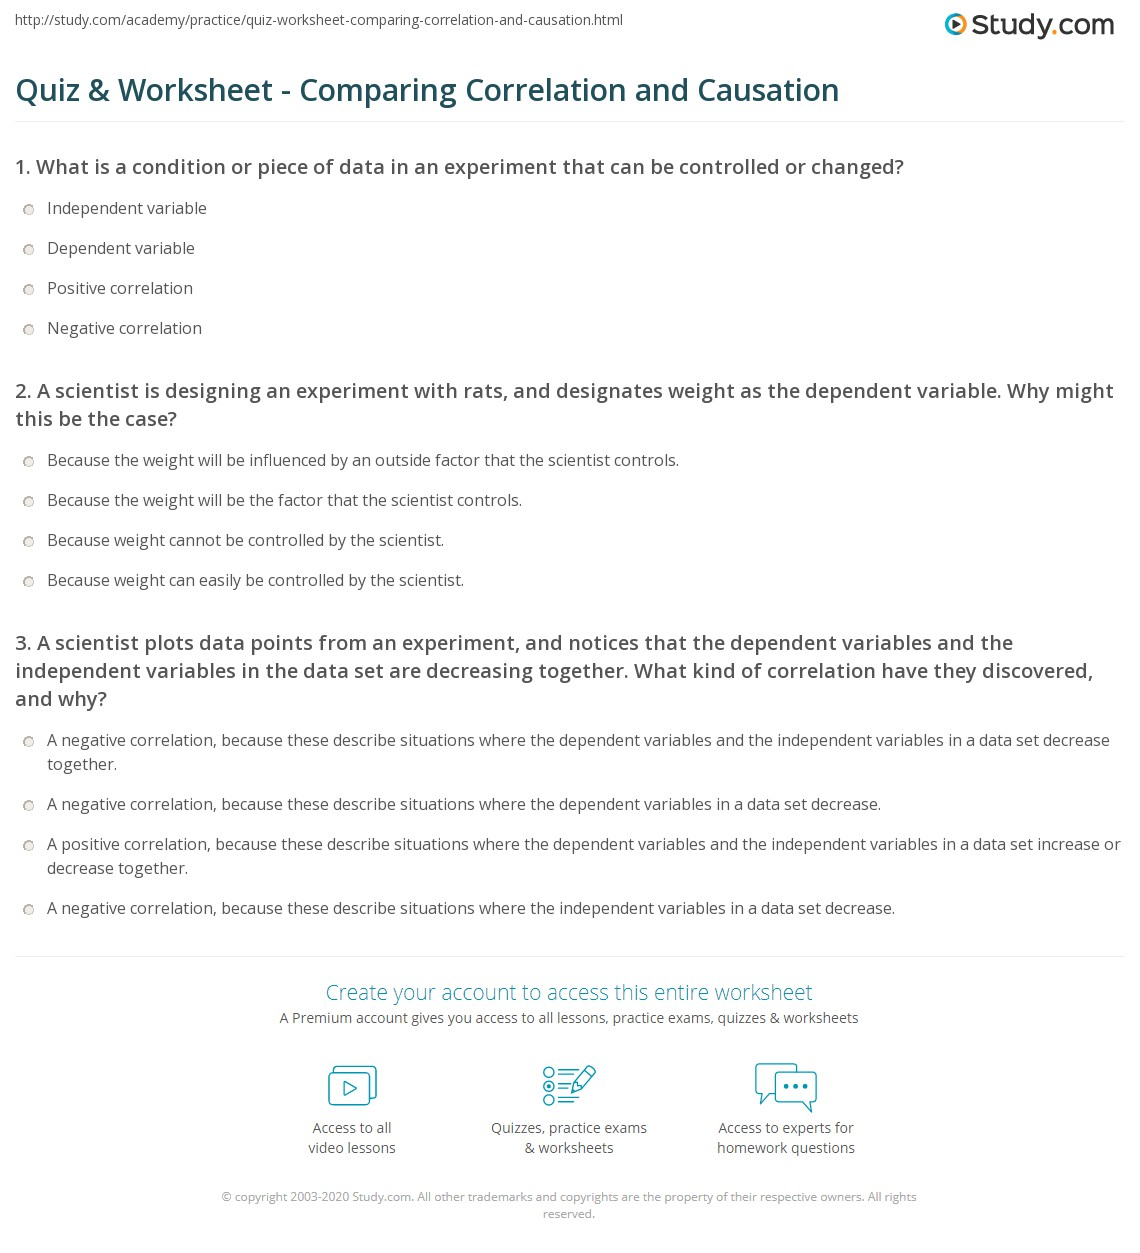 Aldiablosus  Marvelous Quiz Amp Worksheet  Comparing Correlation And Causation  Studycom With Inspiring Print Correlation Vs Causation Differences Amp Definition Worksheet With Easy On The Eye Great Teacher Worksheets Also Grade  Math Multiplication Worksheets In Addition Angle Math Worksheets And Homophones Homographs Homonyms Worksheets As Well As Reduce Fractions To Simplest Form Worksheet Additionally Worksheets For Comprehension From Studycom With Aldiablosus  Inspiring Quiz Amp Worksheet  Comparing Correlation And Causation  Studycom With Easy On The Eye Print Correlation Vs Causation Differences Amp Definition Worksheet And Marvelous Great Teacher Worksheets Also Grade  Math Multiplication Worksheets In Addition Angle Math Worksheets From Studycom